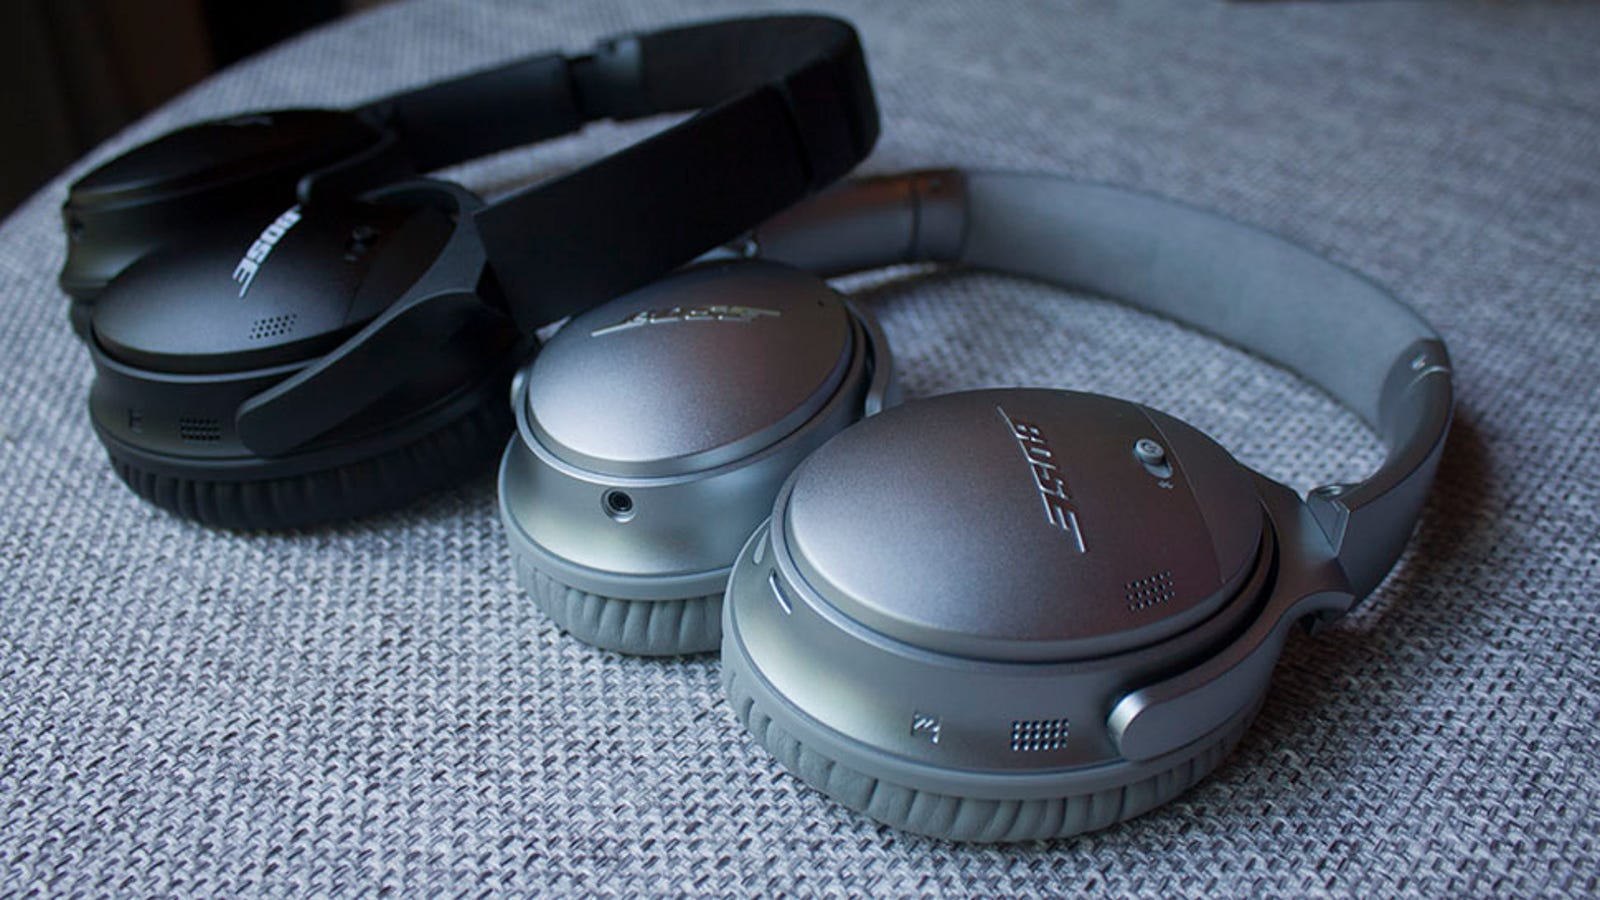 wireless headphones jlab epic 2 - Bose's Best Noise-Canceling Headphones Finally Go Wireless